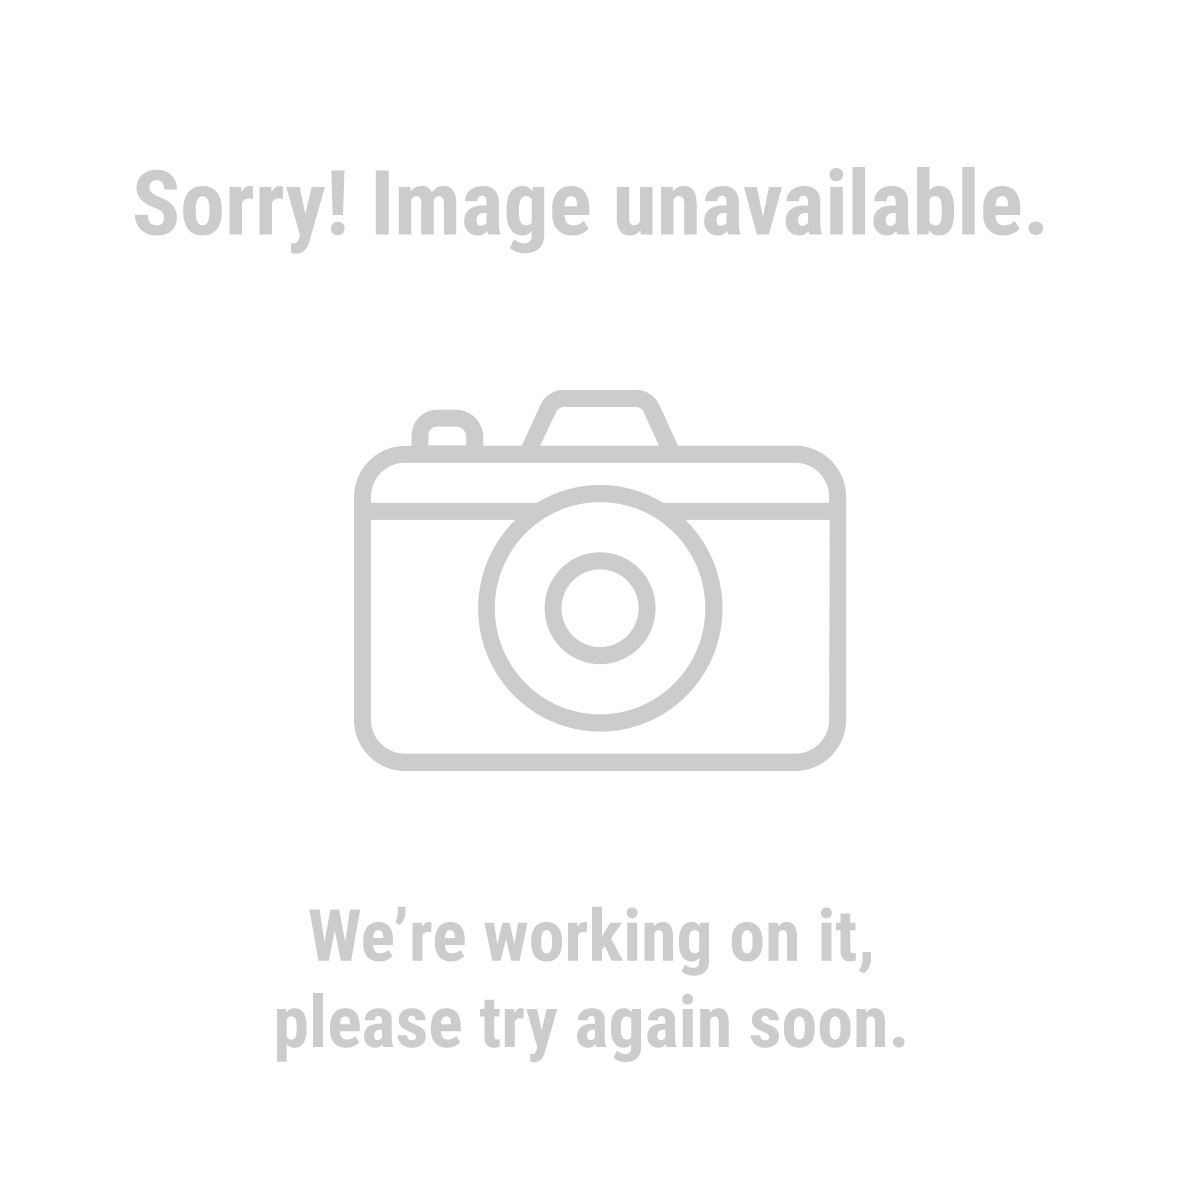 8 Inch Saw Blade Harbor Freight